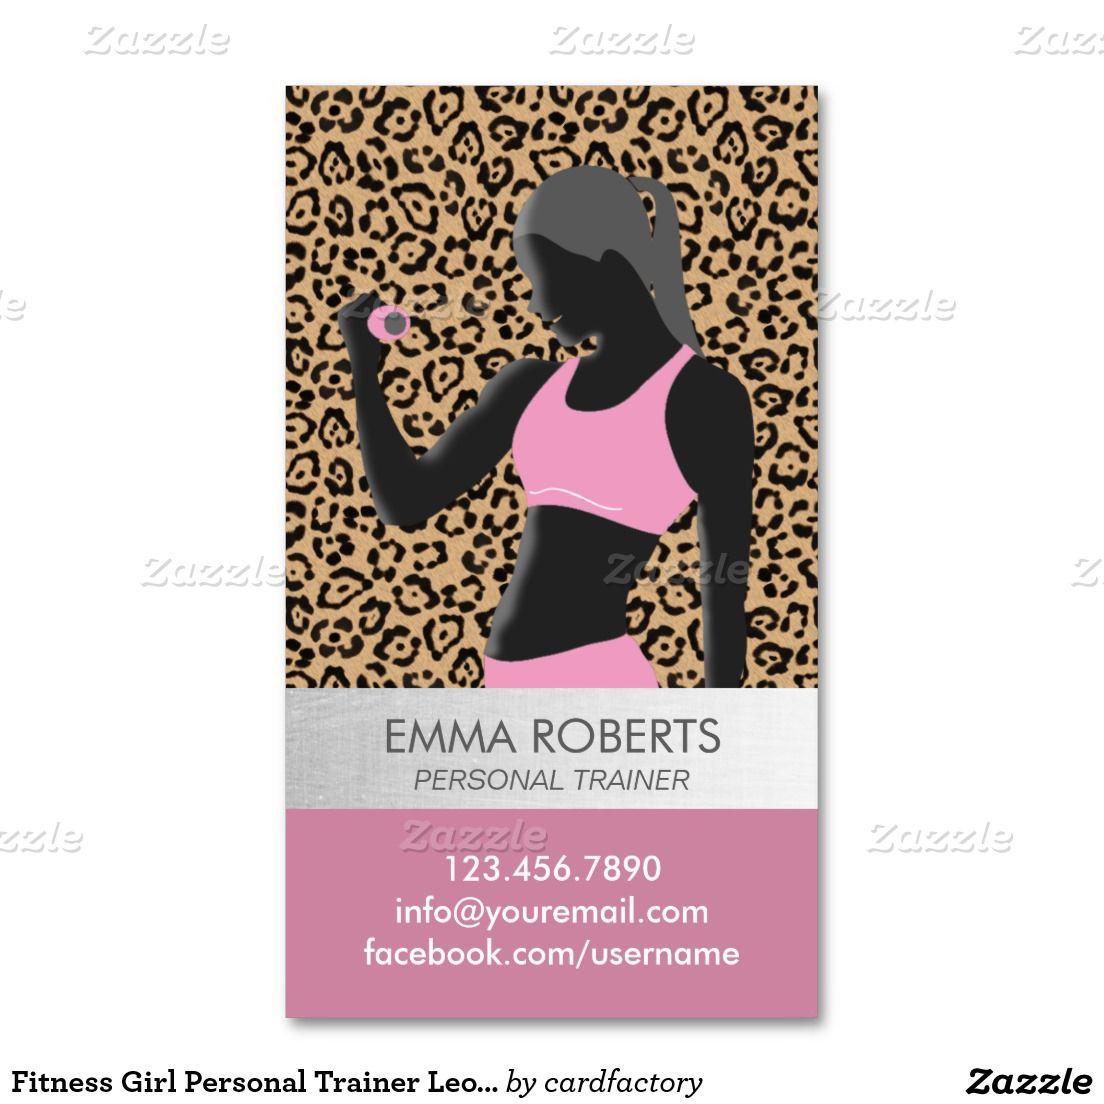 Fitness girl personal trainer leopard print modern business card fitness girl personal trainer leopard print modern business card reheart Images